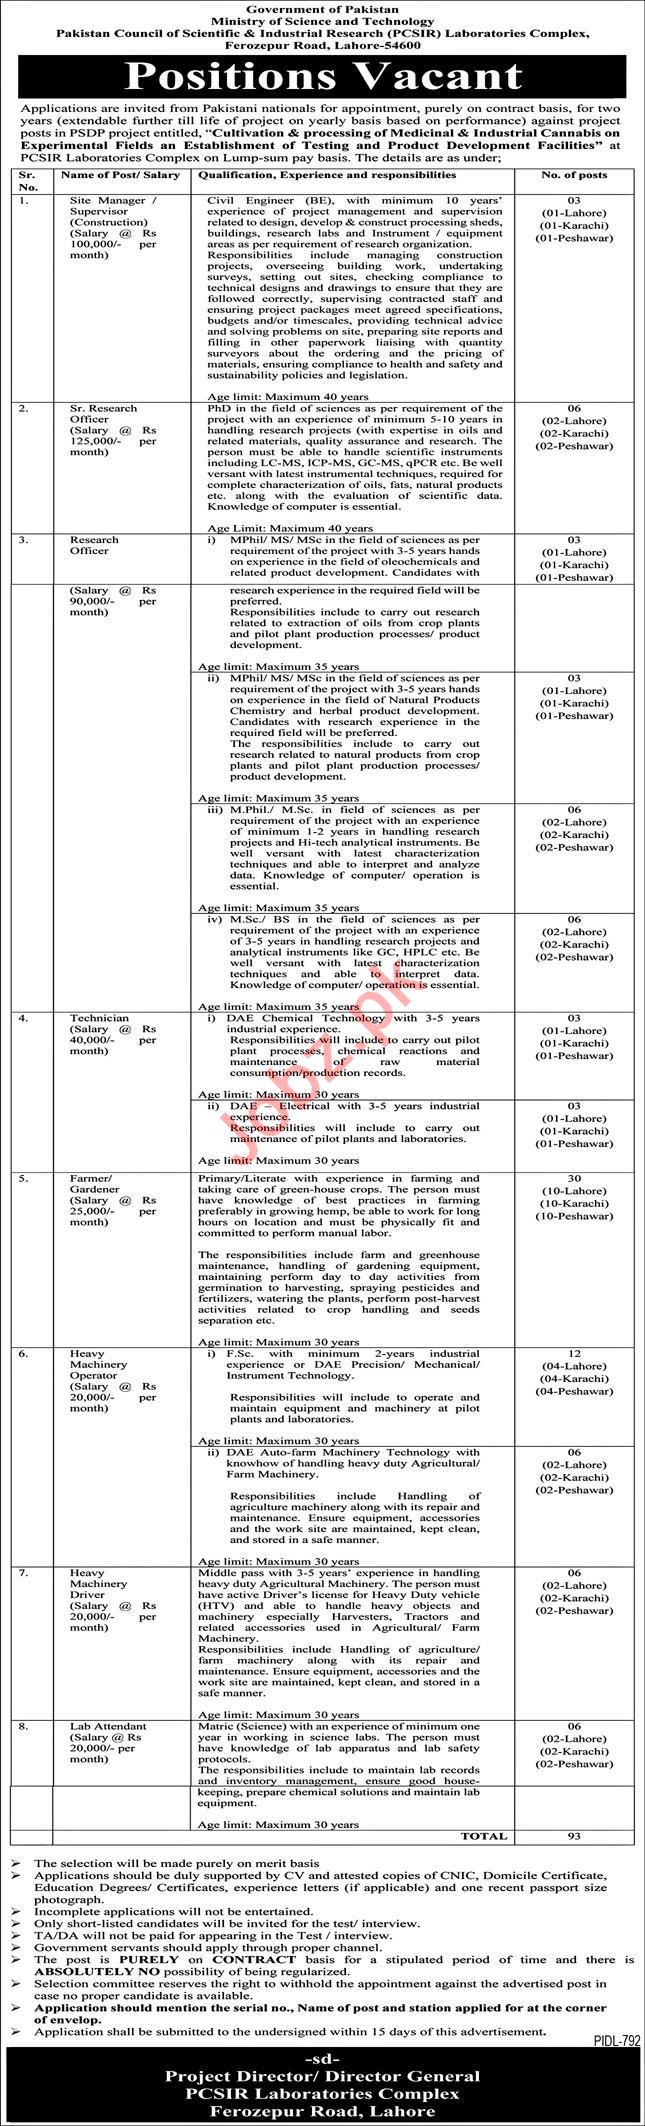 PCSIR Laboratories Complex Lahore Jobs 2021 for Managers